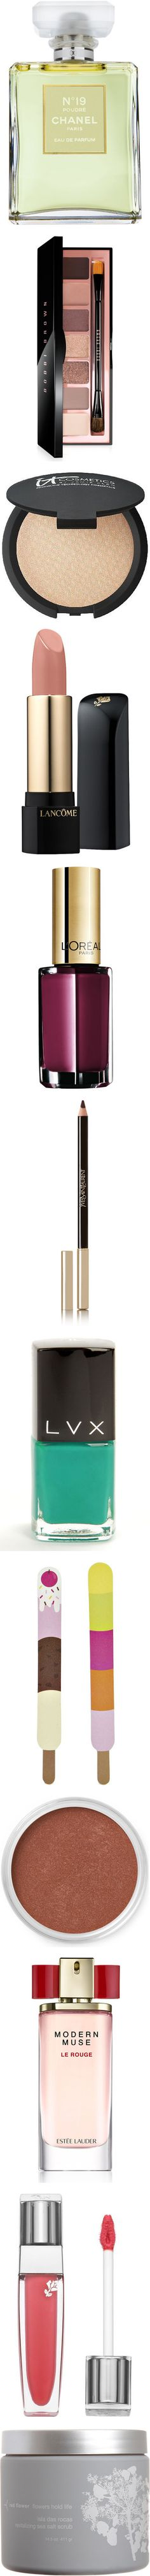 Top Beauty Products for Jun 27th, 2015 by polyvore on Polyvore featuring polyvore, beauty products, fragrance, perfume, makeup, accessories, chanel fragrance, eau de perfume, chanel perfume, eau de parfum perfume, edp perfume, eye makeup, eyeshadow, gold eye shadow, gold shimmer eyeshadow, matte palette eyeshadow, gold eyeshadow, palette eyeshadow, face makeup, face powder, lip makeup, lipstick, lips makeup, lancôme, black lipstick, moisturizing lipstick, black lips makeup, nail care, nail…